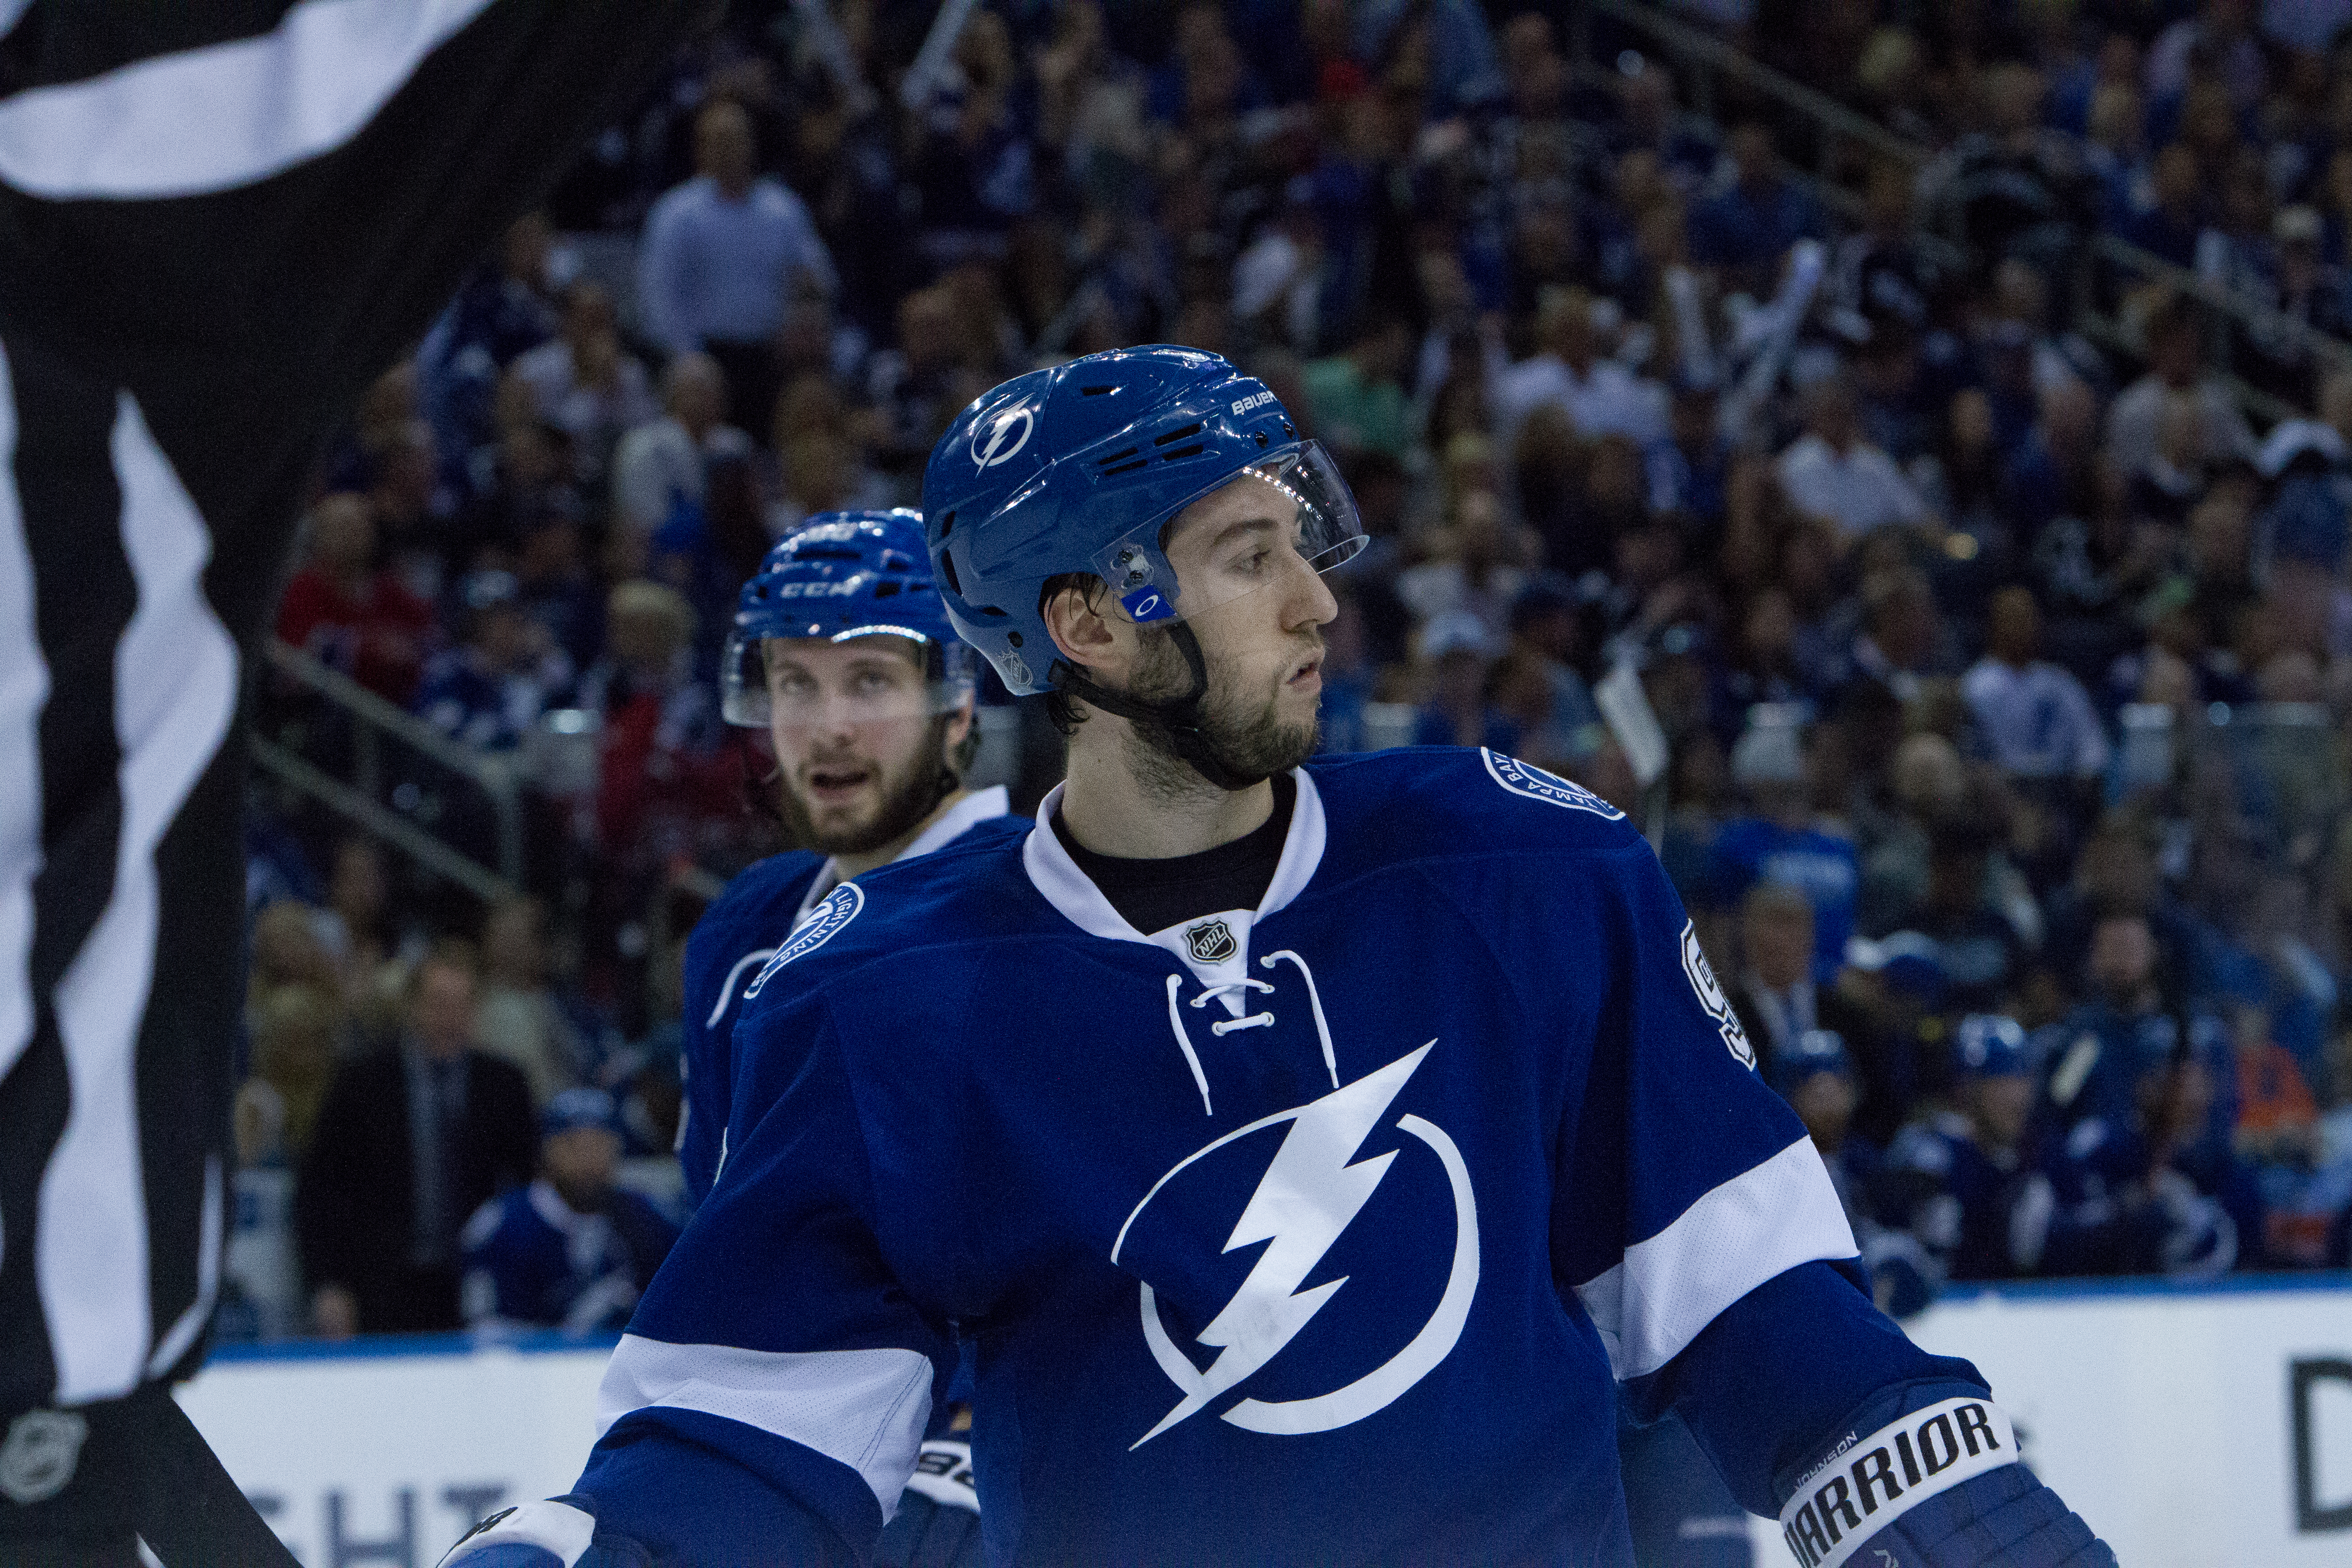 Johnson leads the Lightning to another playoff victory./ANDREW J. KRAMER